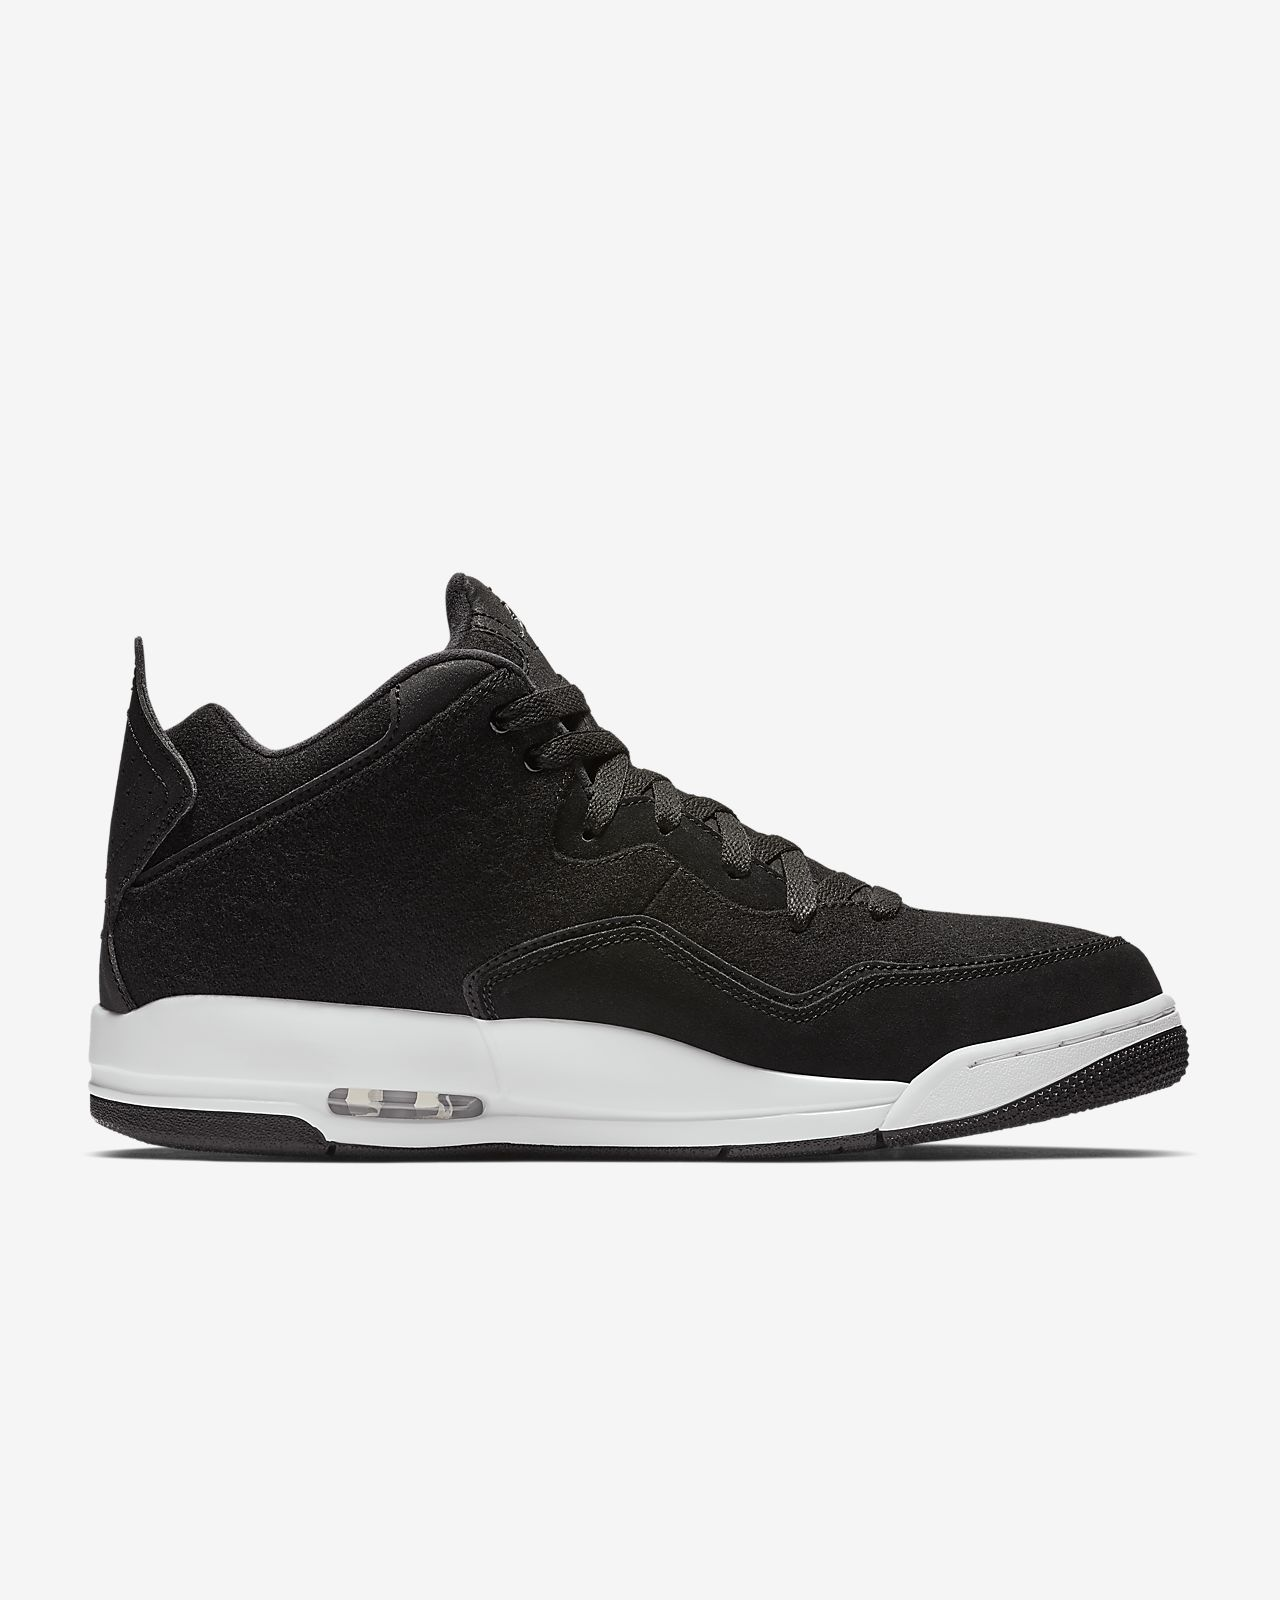 ab963ab4f92 Jordan Courtside 23 Men's Shoe. Nike.com CA